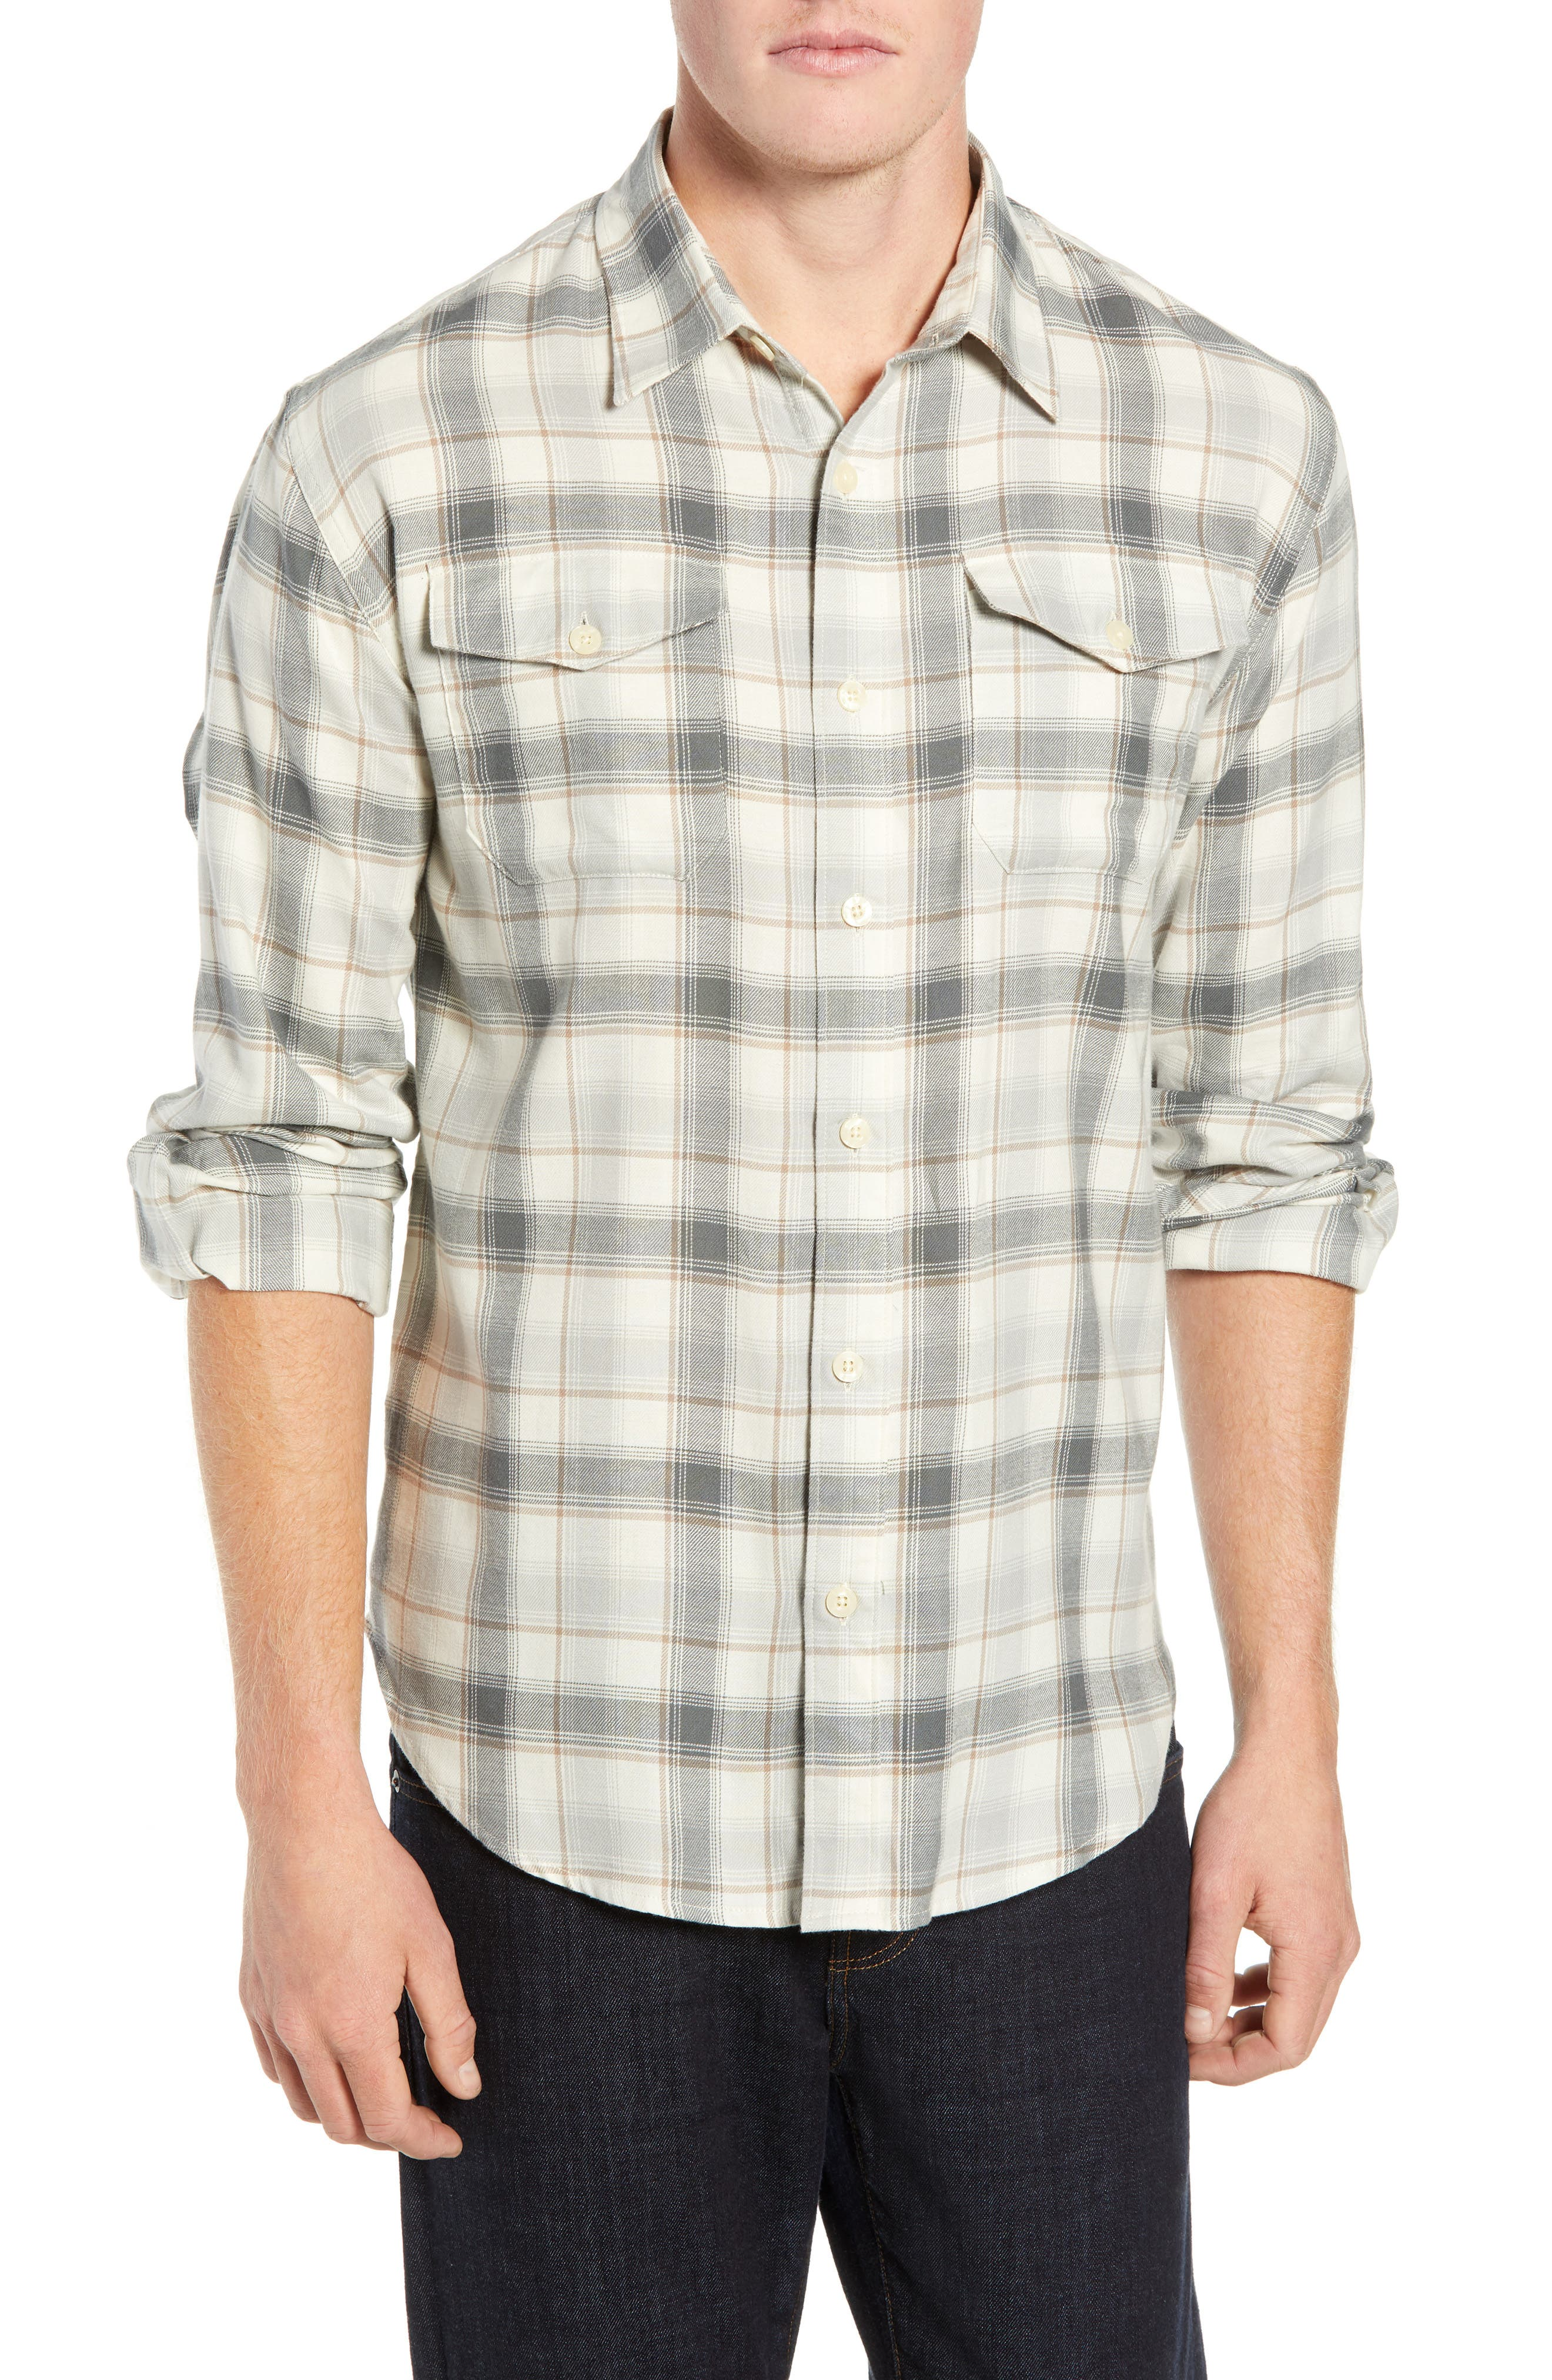 Coastaoro Honeydew Plaid Garment Washed Flannel Shirt, Grey